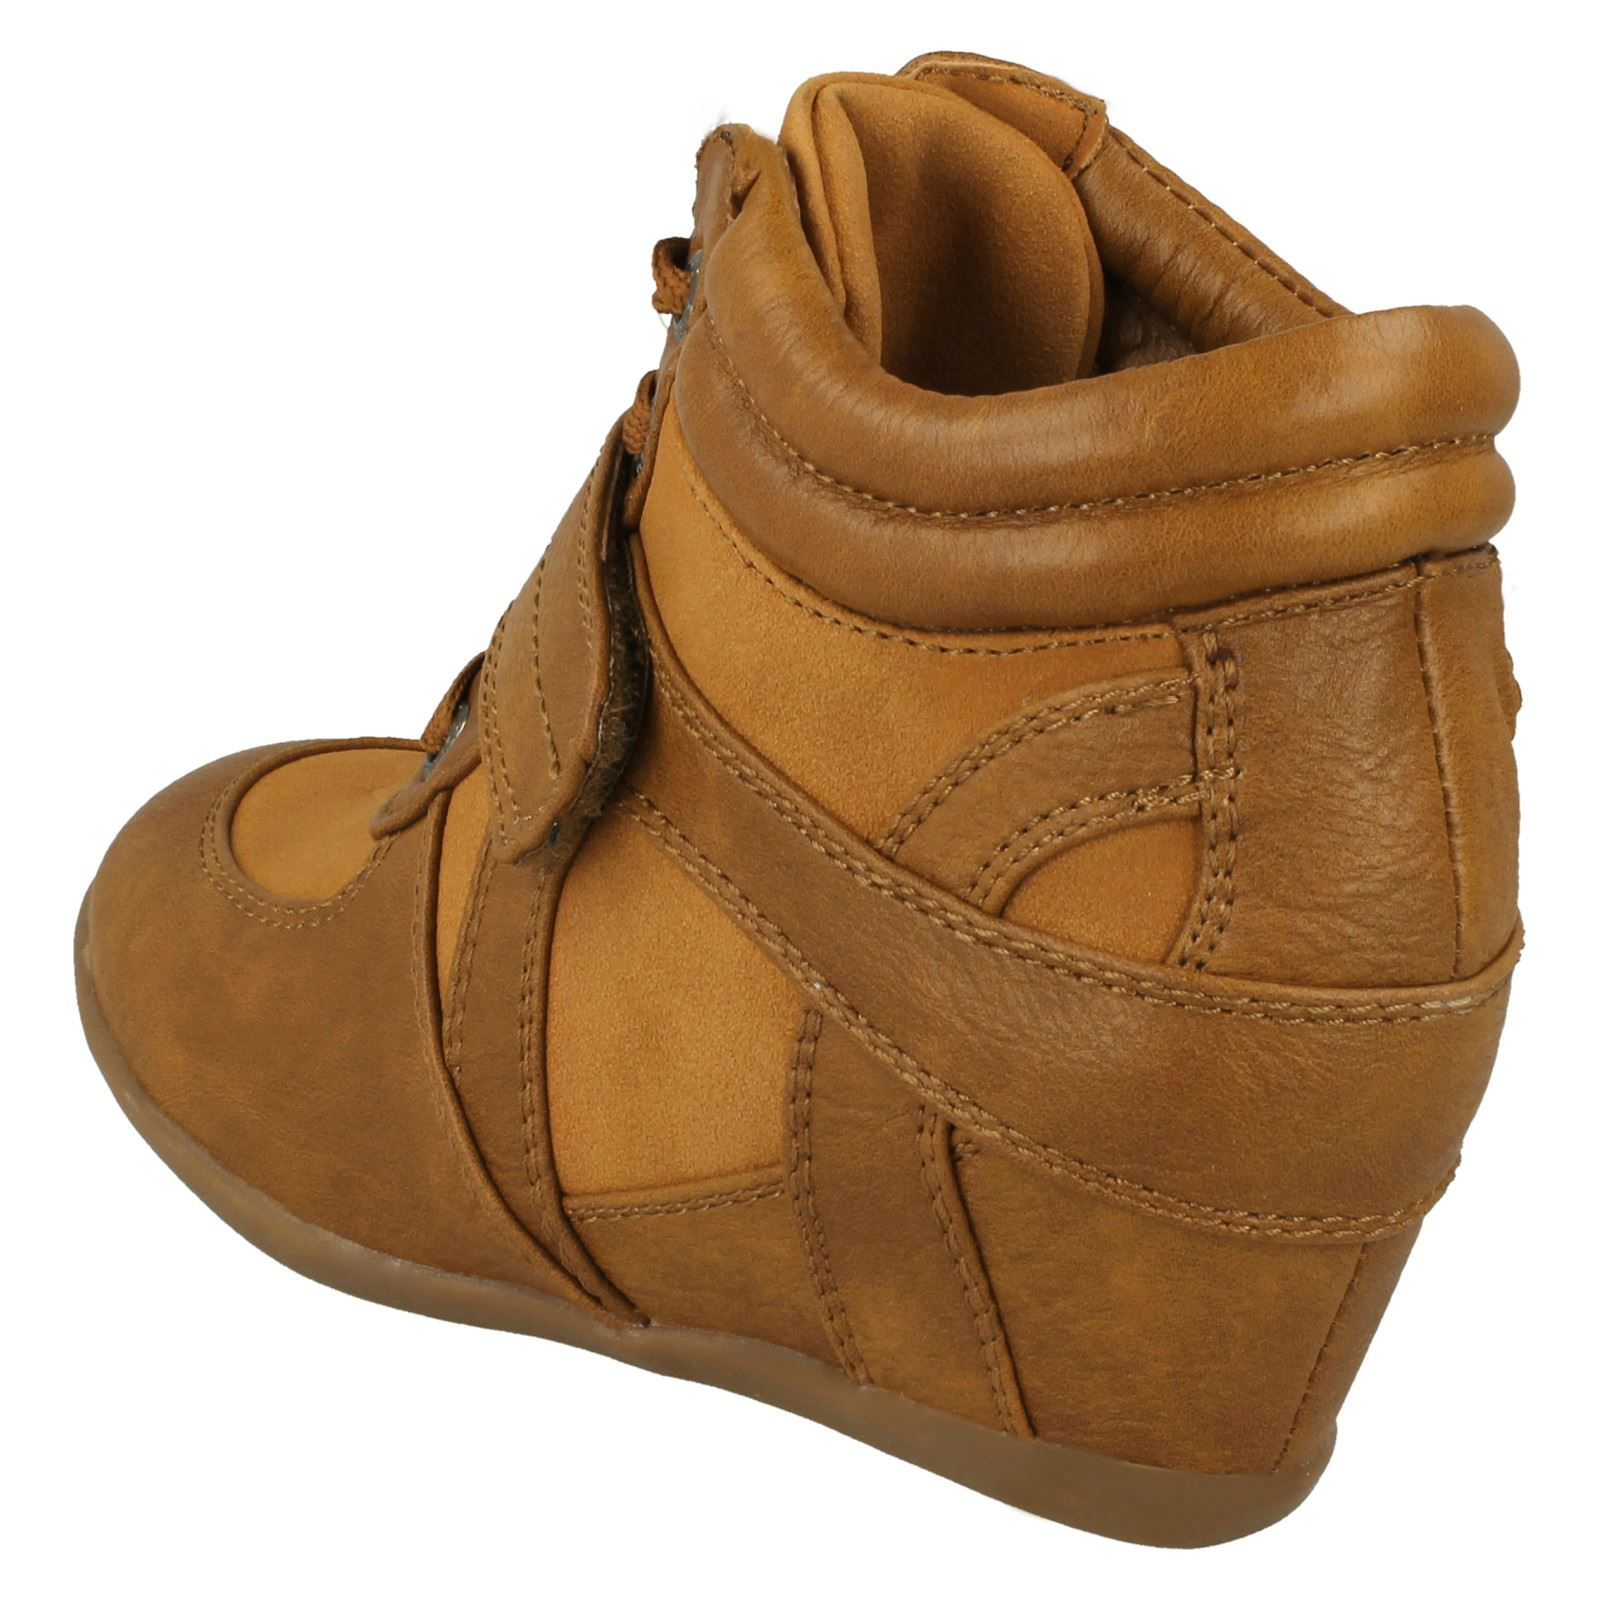 Girls Cutie Mid Wedge Ankle Boots